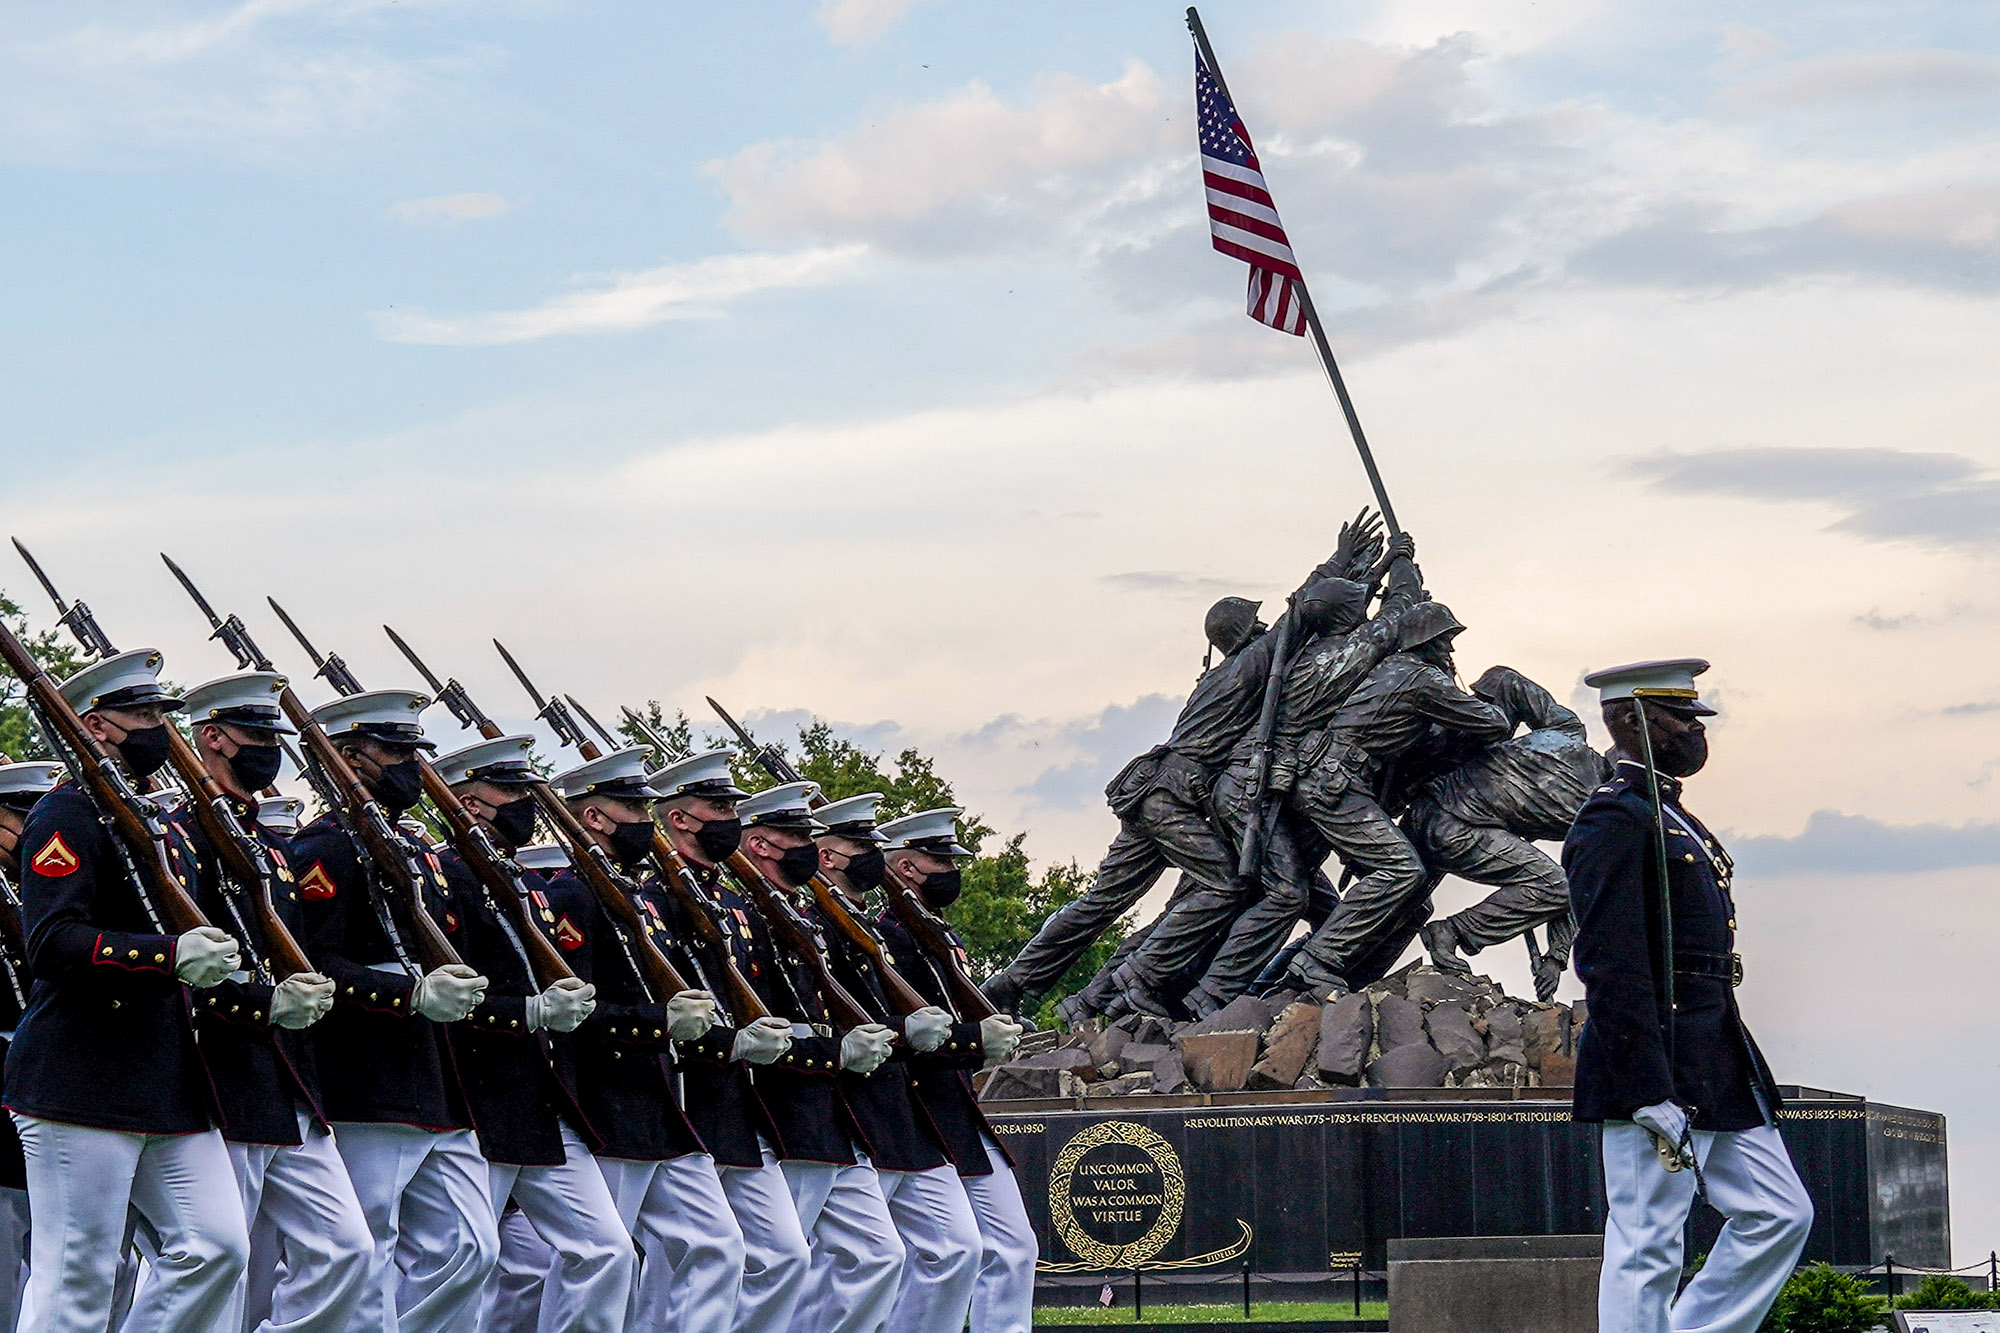 """Marines with the Silent Drill Platoon march for """"Pass in Review"""" during a Tuesday Sunset Parade at the Marine Corps War Memorial, Arlington, Va., June 8, 2021. (Sgt. Jason Kolela/Marine Corps)"""